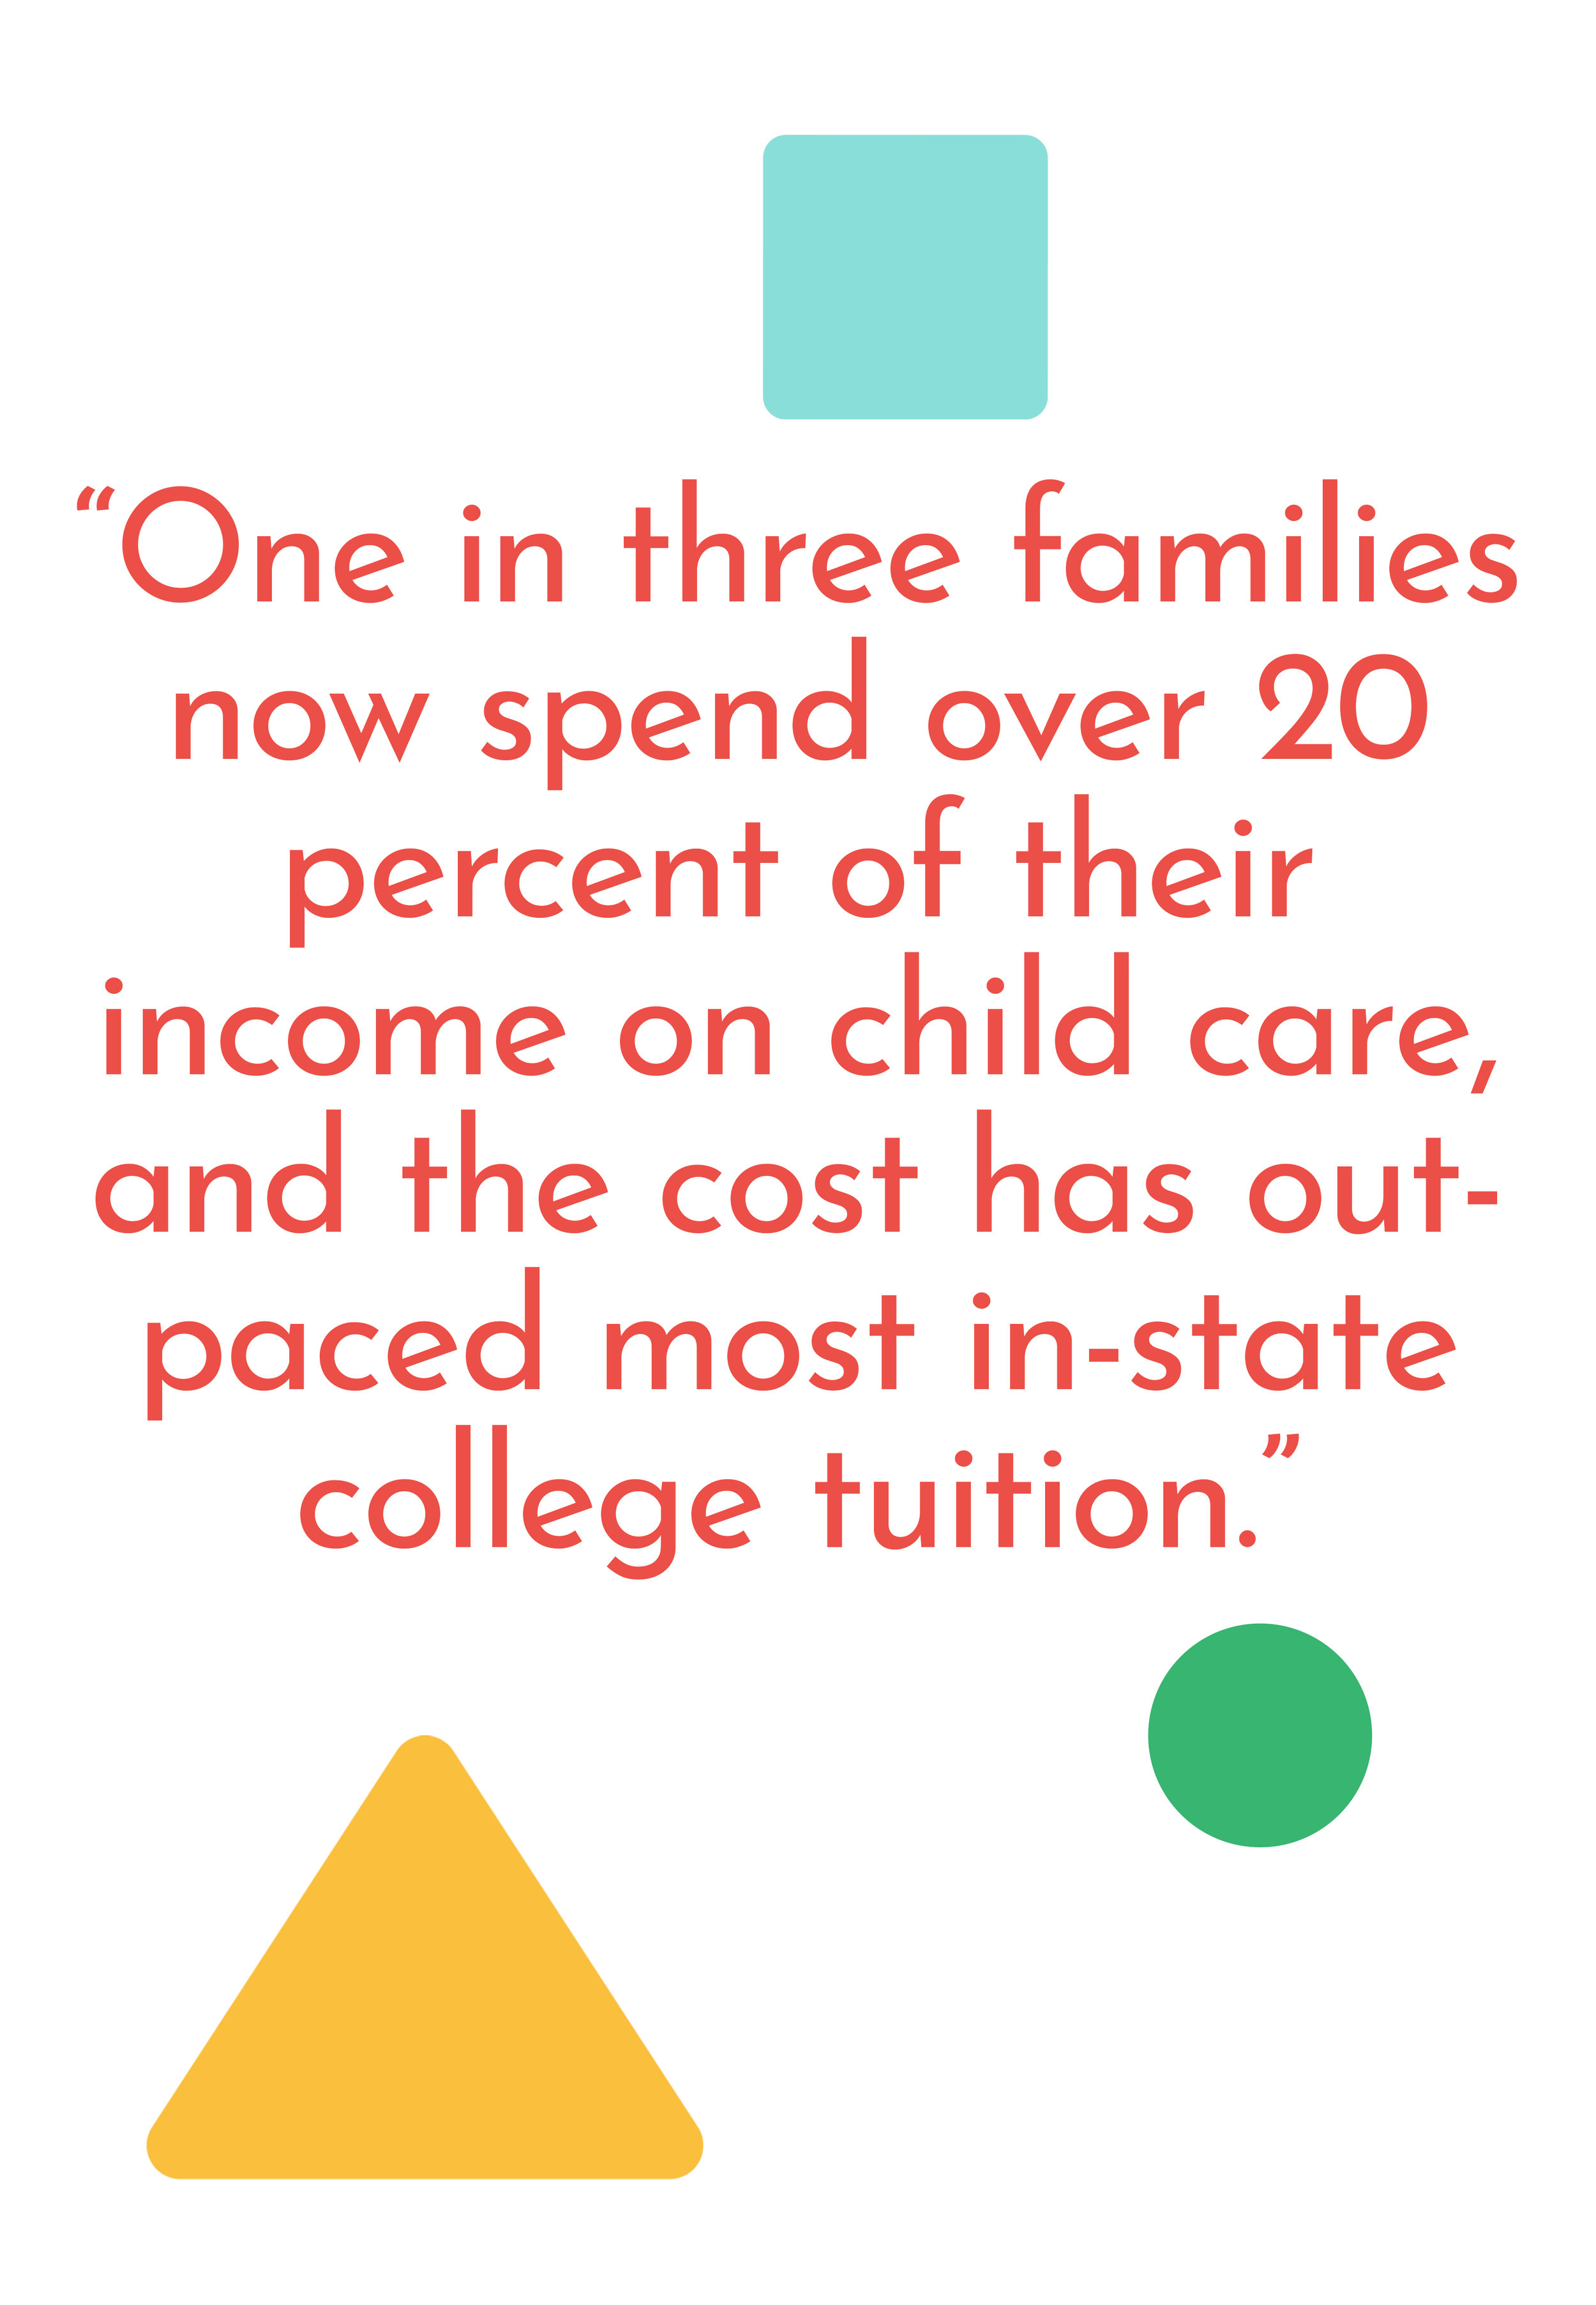 Why Universal Child Care matters: One in three families now spend over 20 percent of their income on child care, and the cost has out-paced most in-state college tuition.